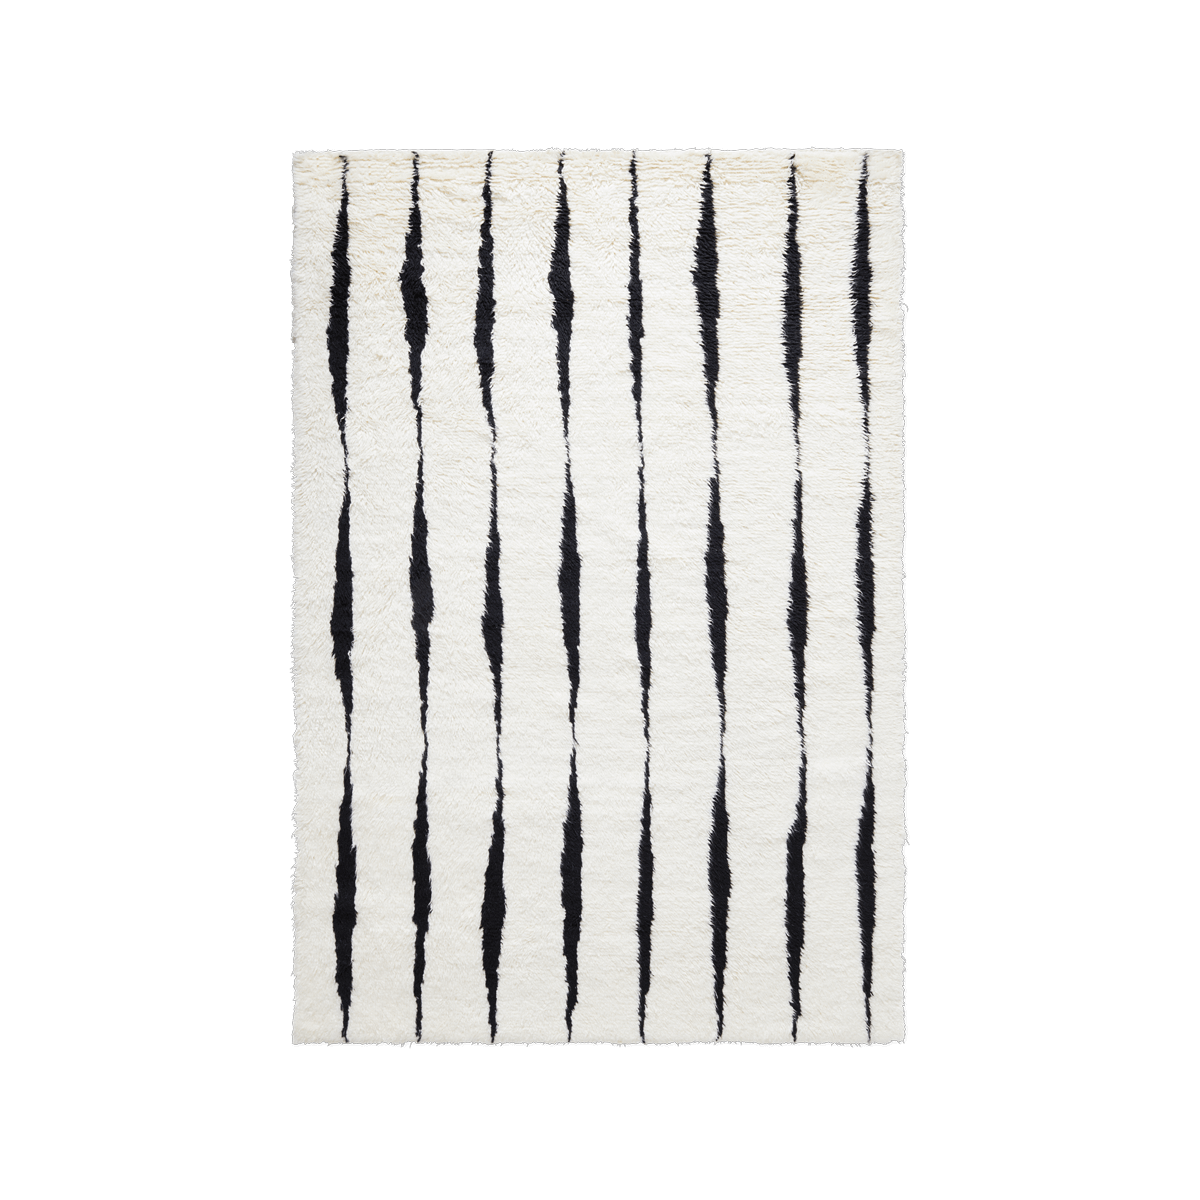 Product image of the shaggy rug Fjord in the color Cream and Black. It has has linear pattern from short side to short side in black.